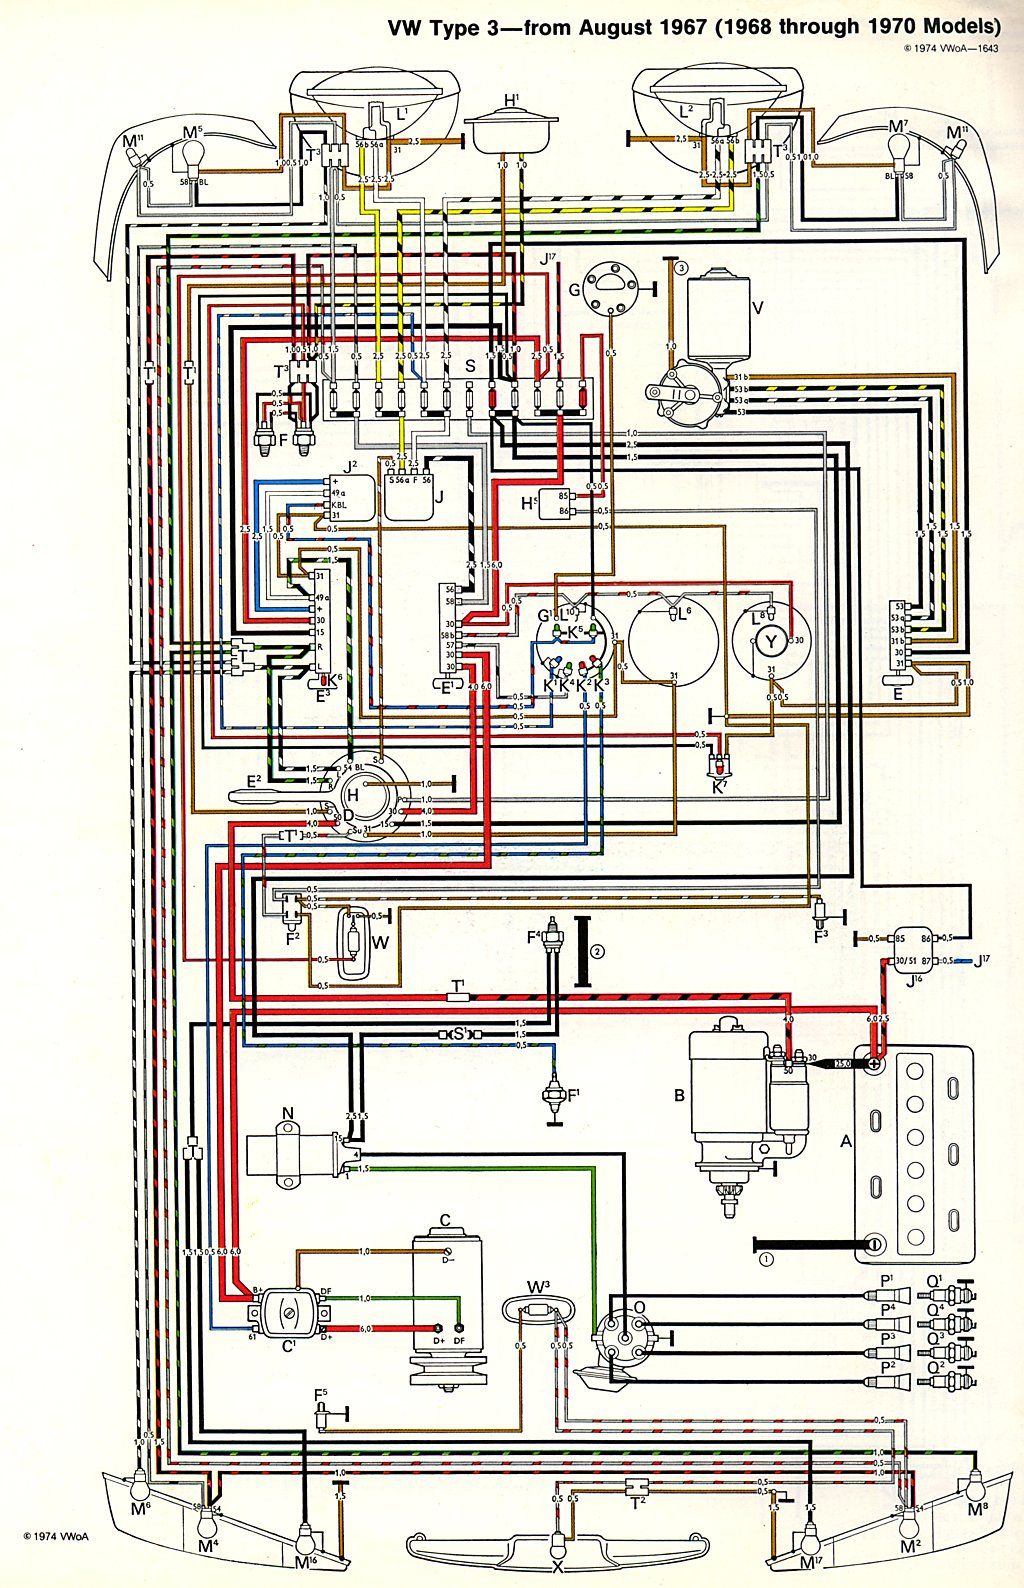 1969 vw bug wiring harness thesamba.com :: type 3 wiring diagrams #11